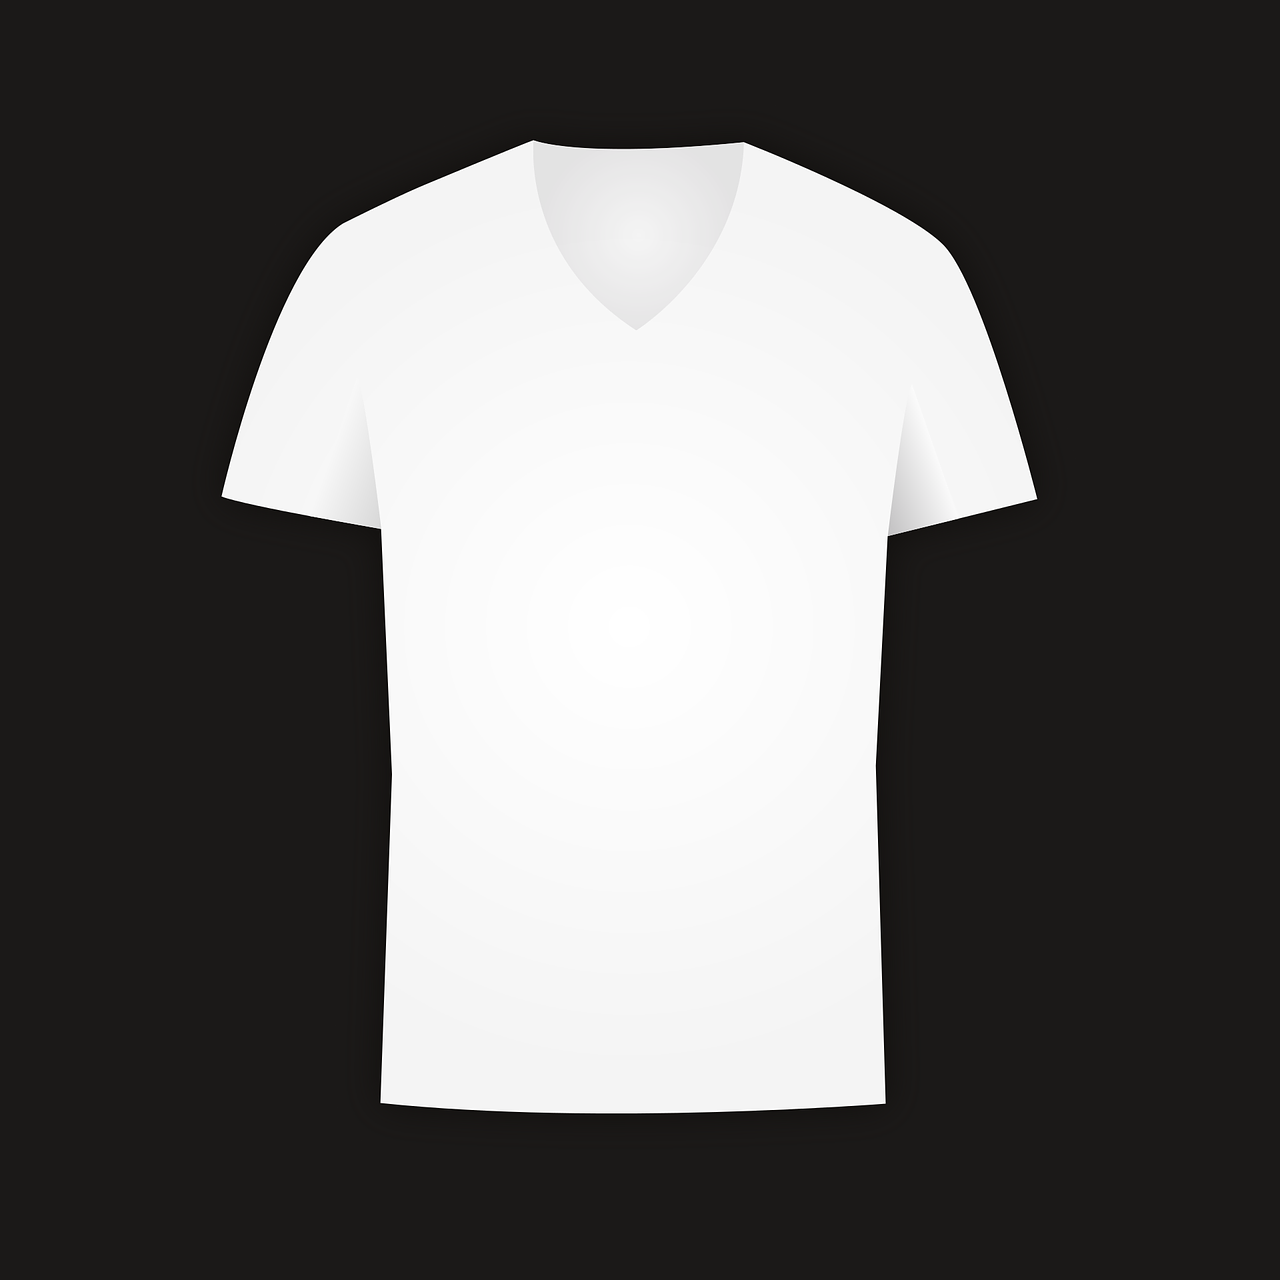 1390a0b858f8f The History of the V-Neck Shirt | The Adair Group | Resources